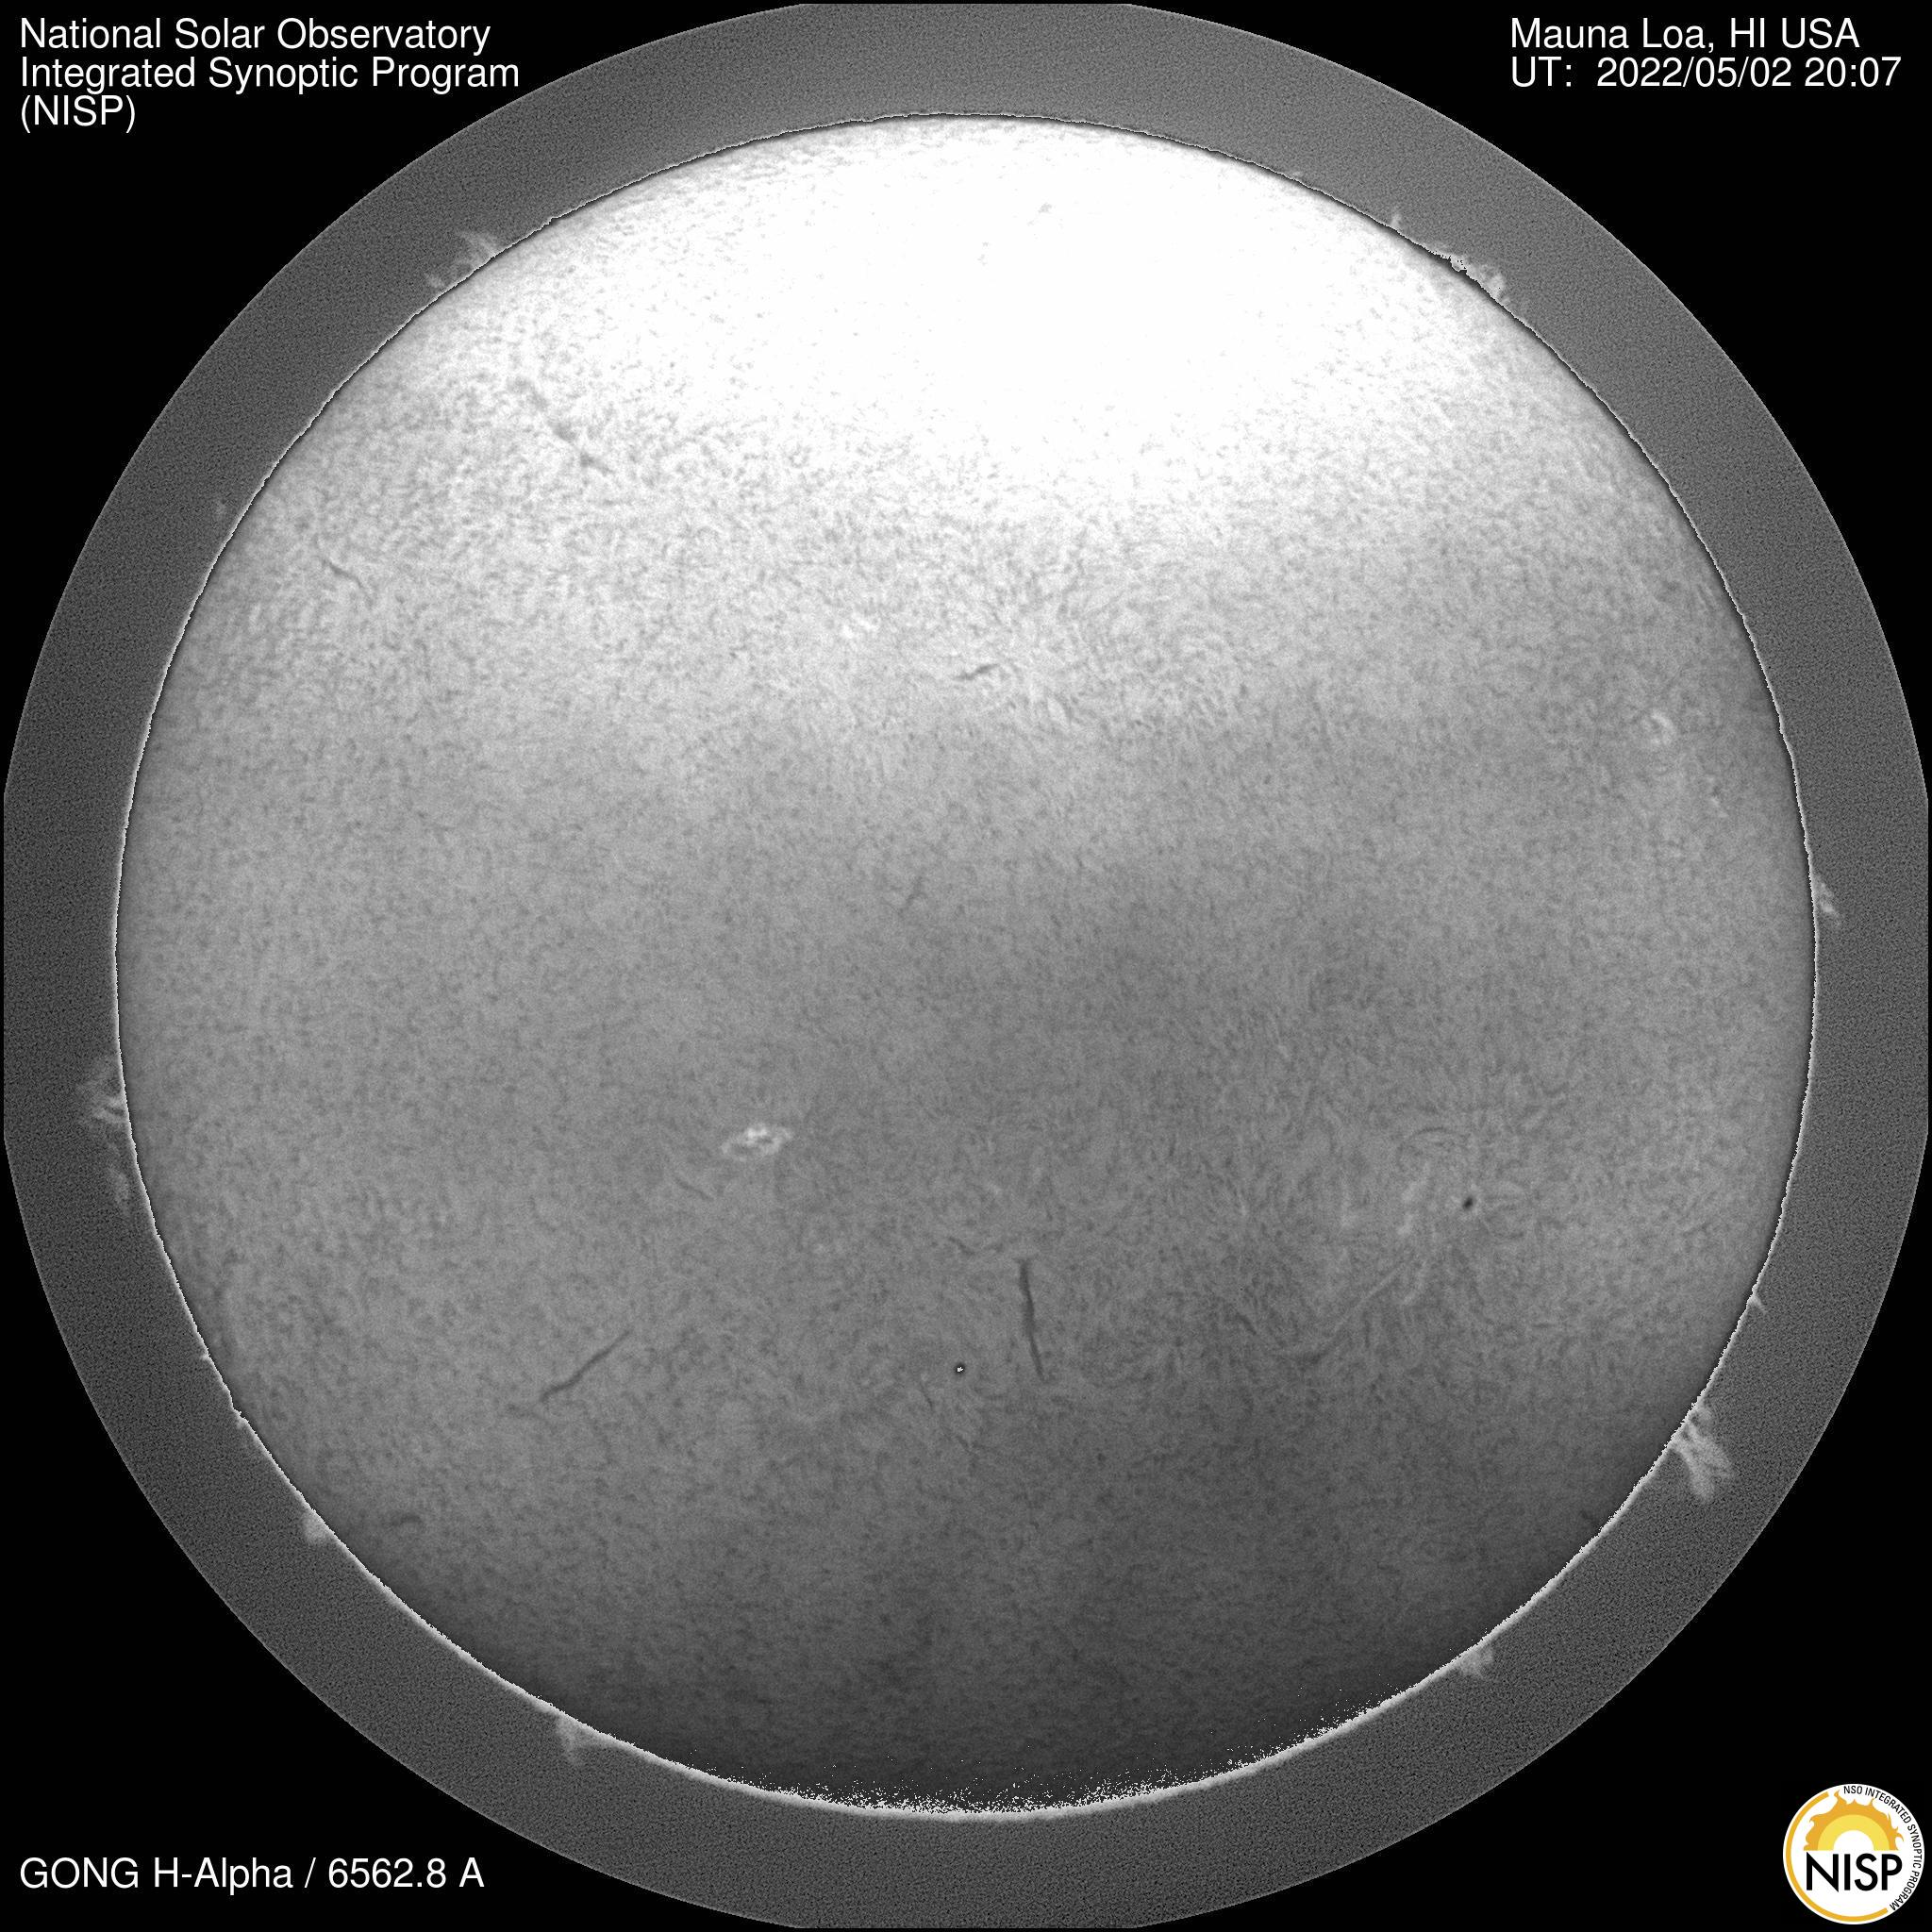 Latest Mauna Loa image of the Sun